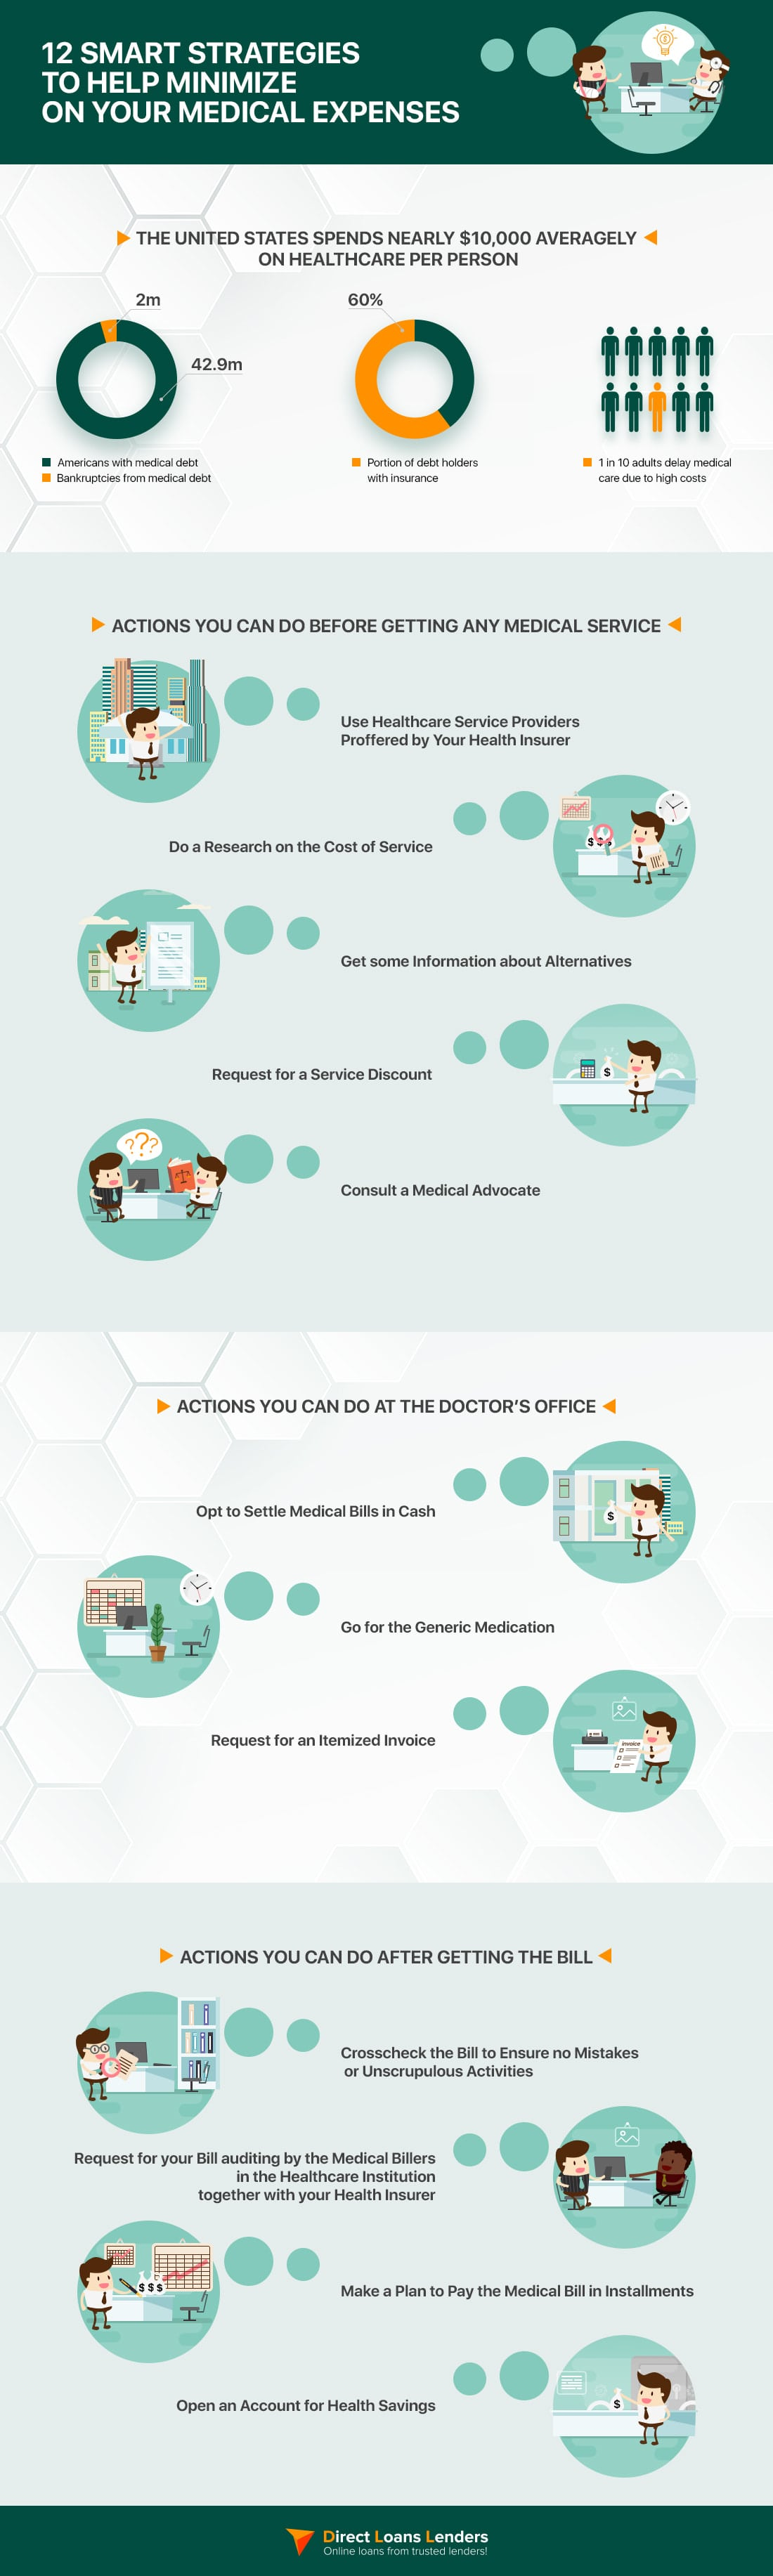 12-Smart-Strategies-to-Help-Minimize-on-Your-Medical-Expenses-infographic-plaza